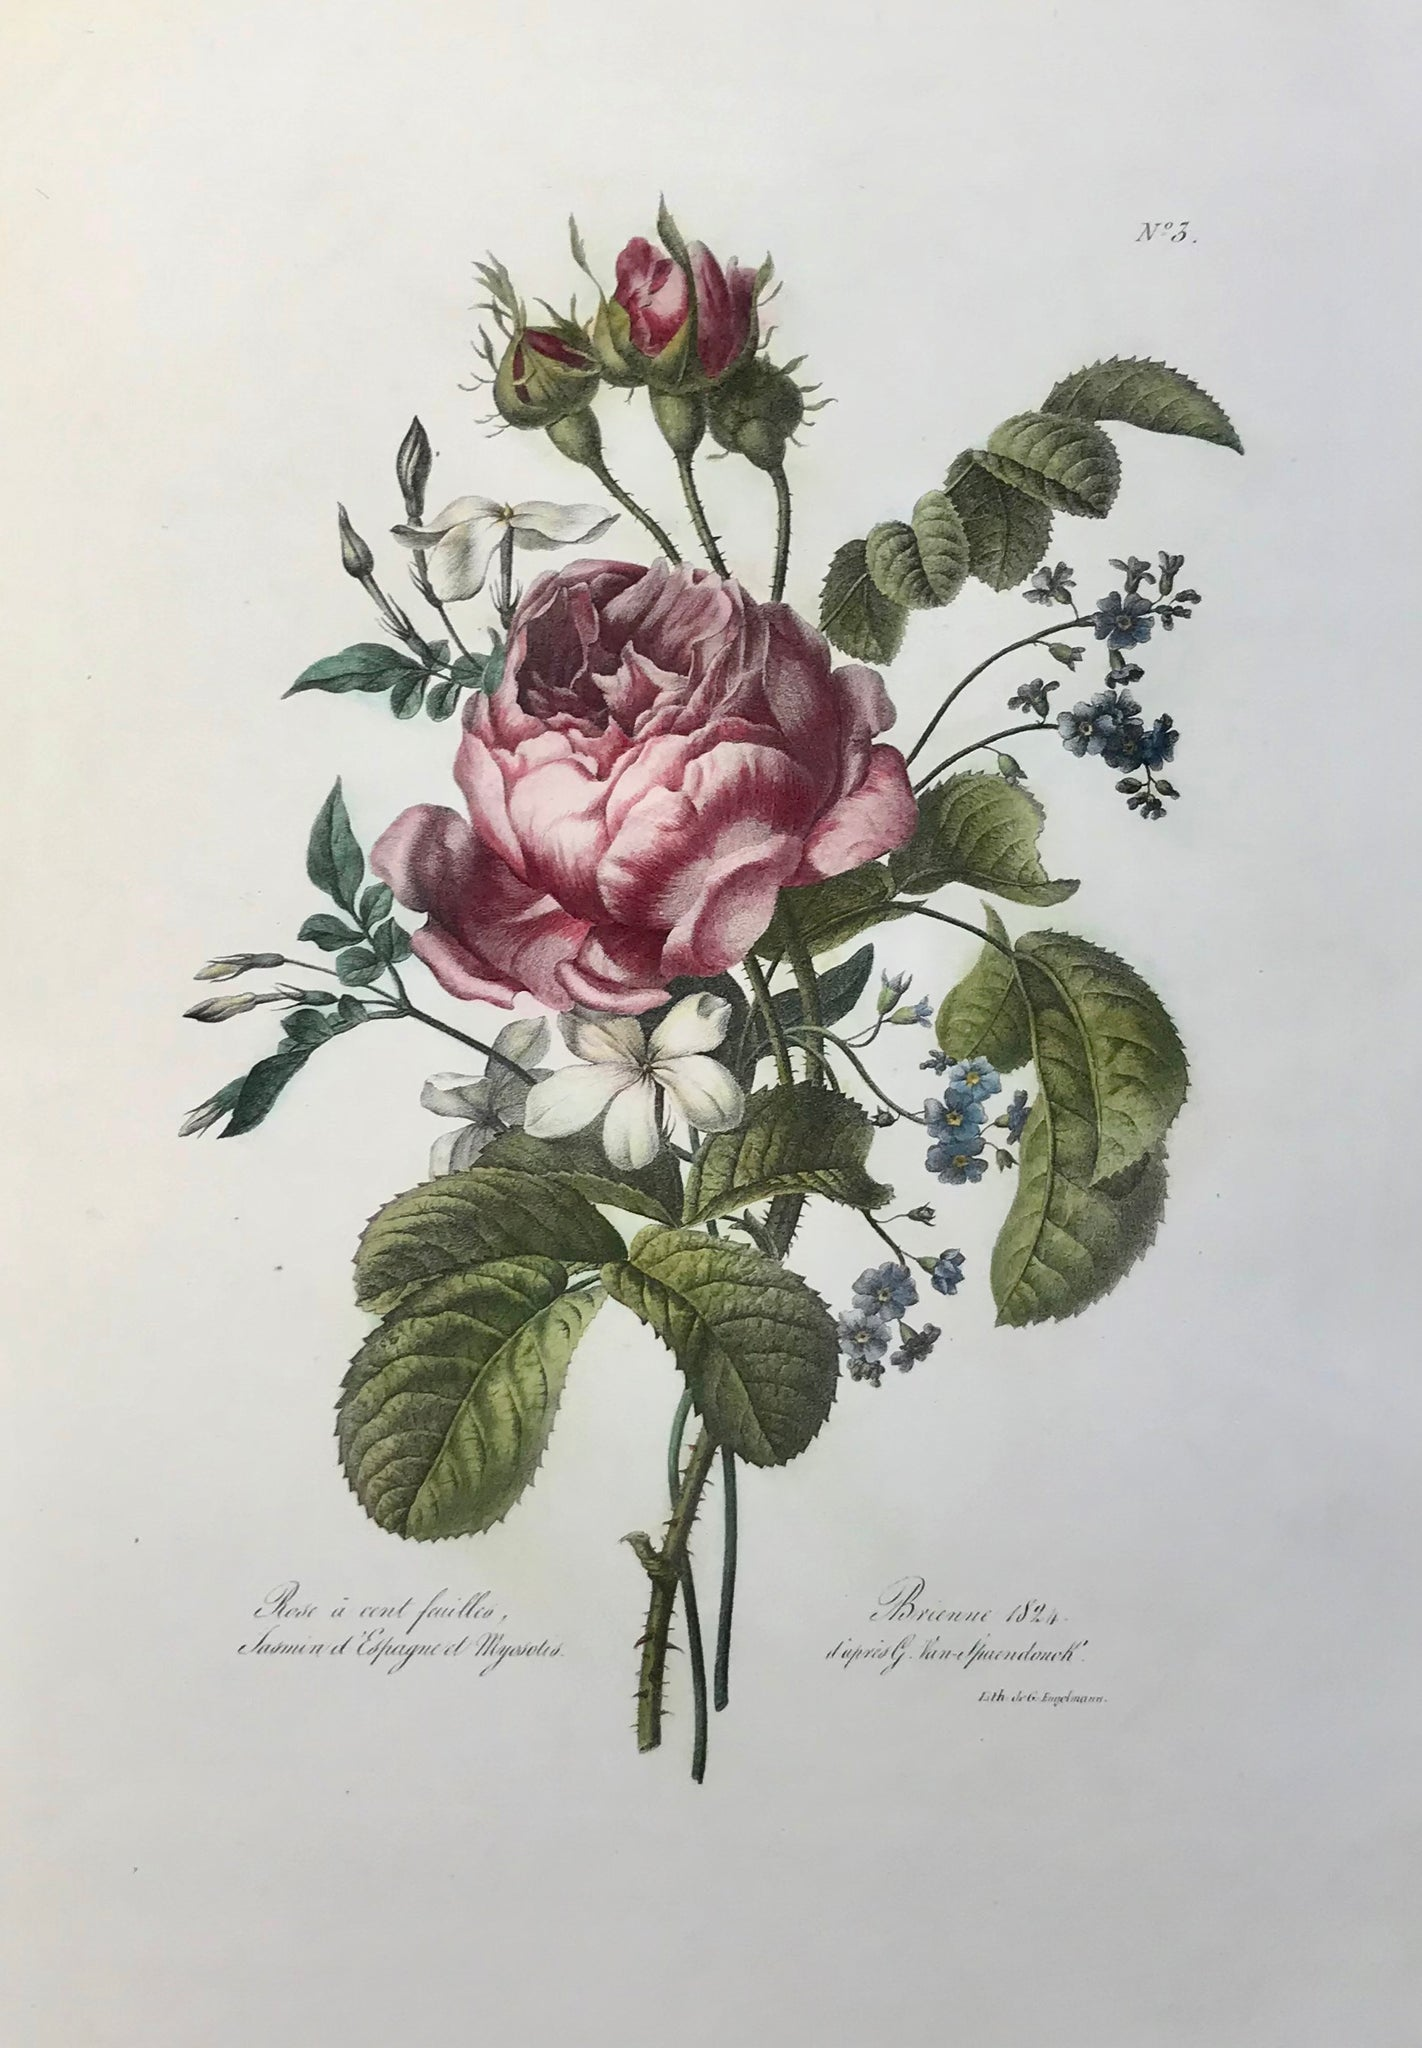 """Rose à cent feuilles - Jasmin d'Espagne et Myosotis""  A rose flower bouquet with a Centifolia-rose, Spanish jasmine and forgetmenot  Delightful lithograph by Gottfried (Godefroy) Engelmann (1788-1839)  After Gerard van Spaendonck (1746-1822)  Brienne, dated 1824  Very clean and very attractive. Minimal restored faults in margins.  Sheet size 36 x 26 cm (ca. 14.2 x 10.2"")  $ 950.00  Order Nr. EXCLUSIVE249238"